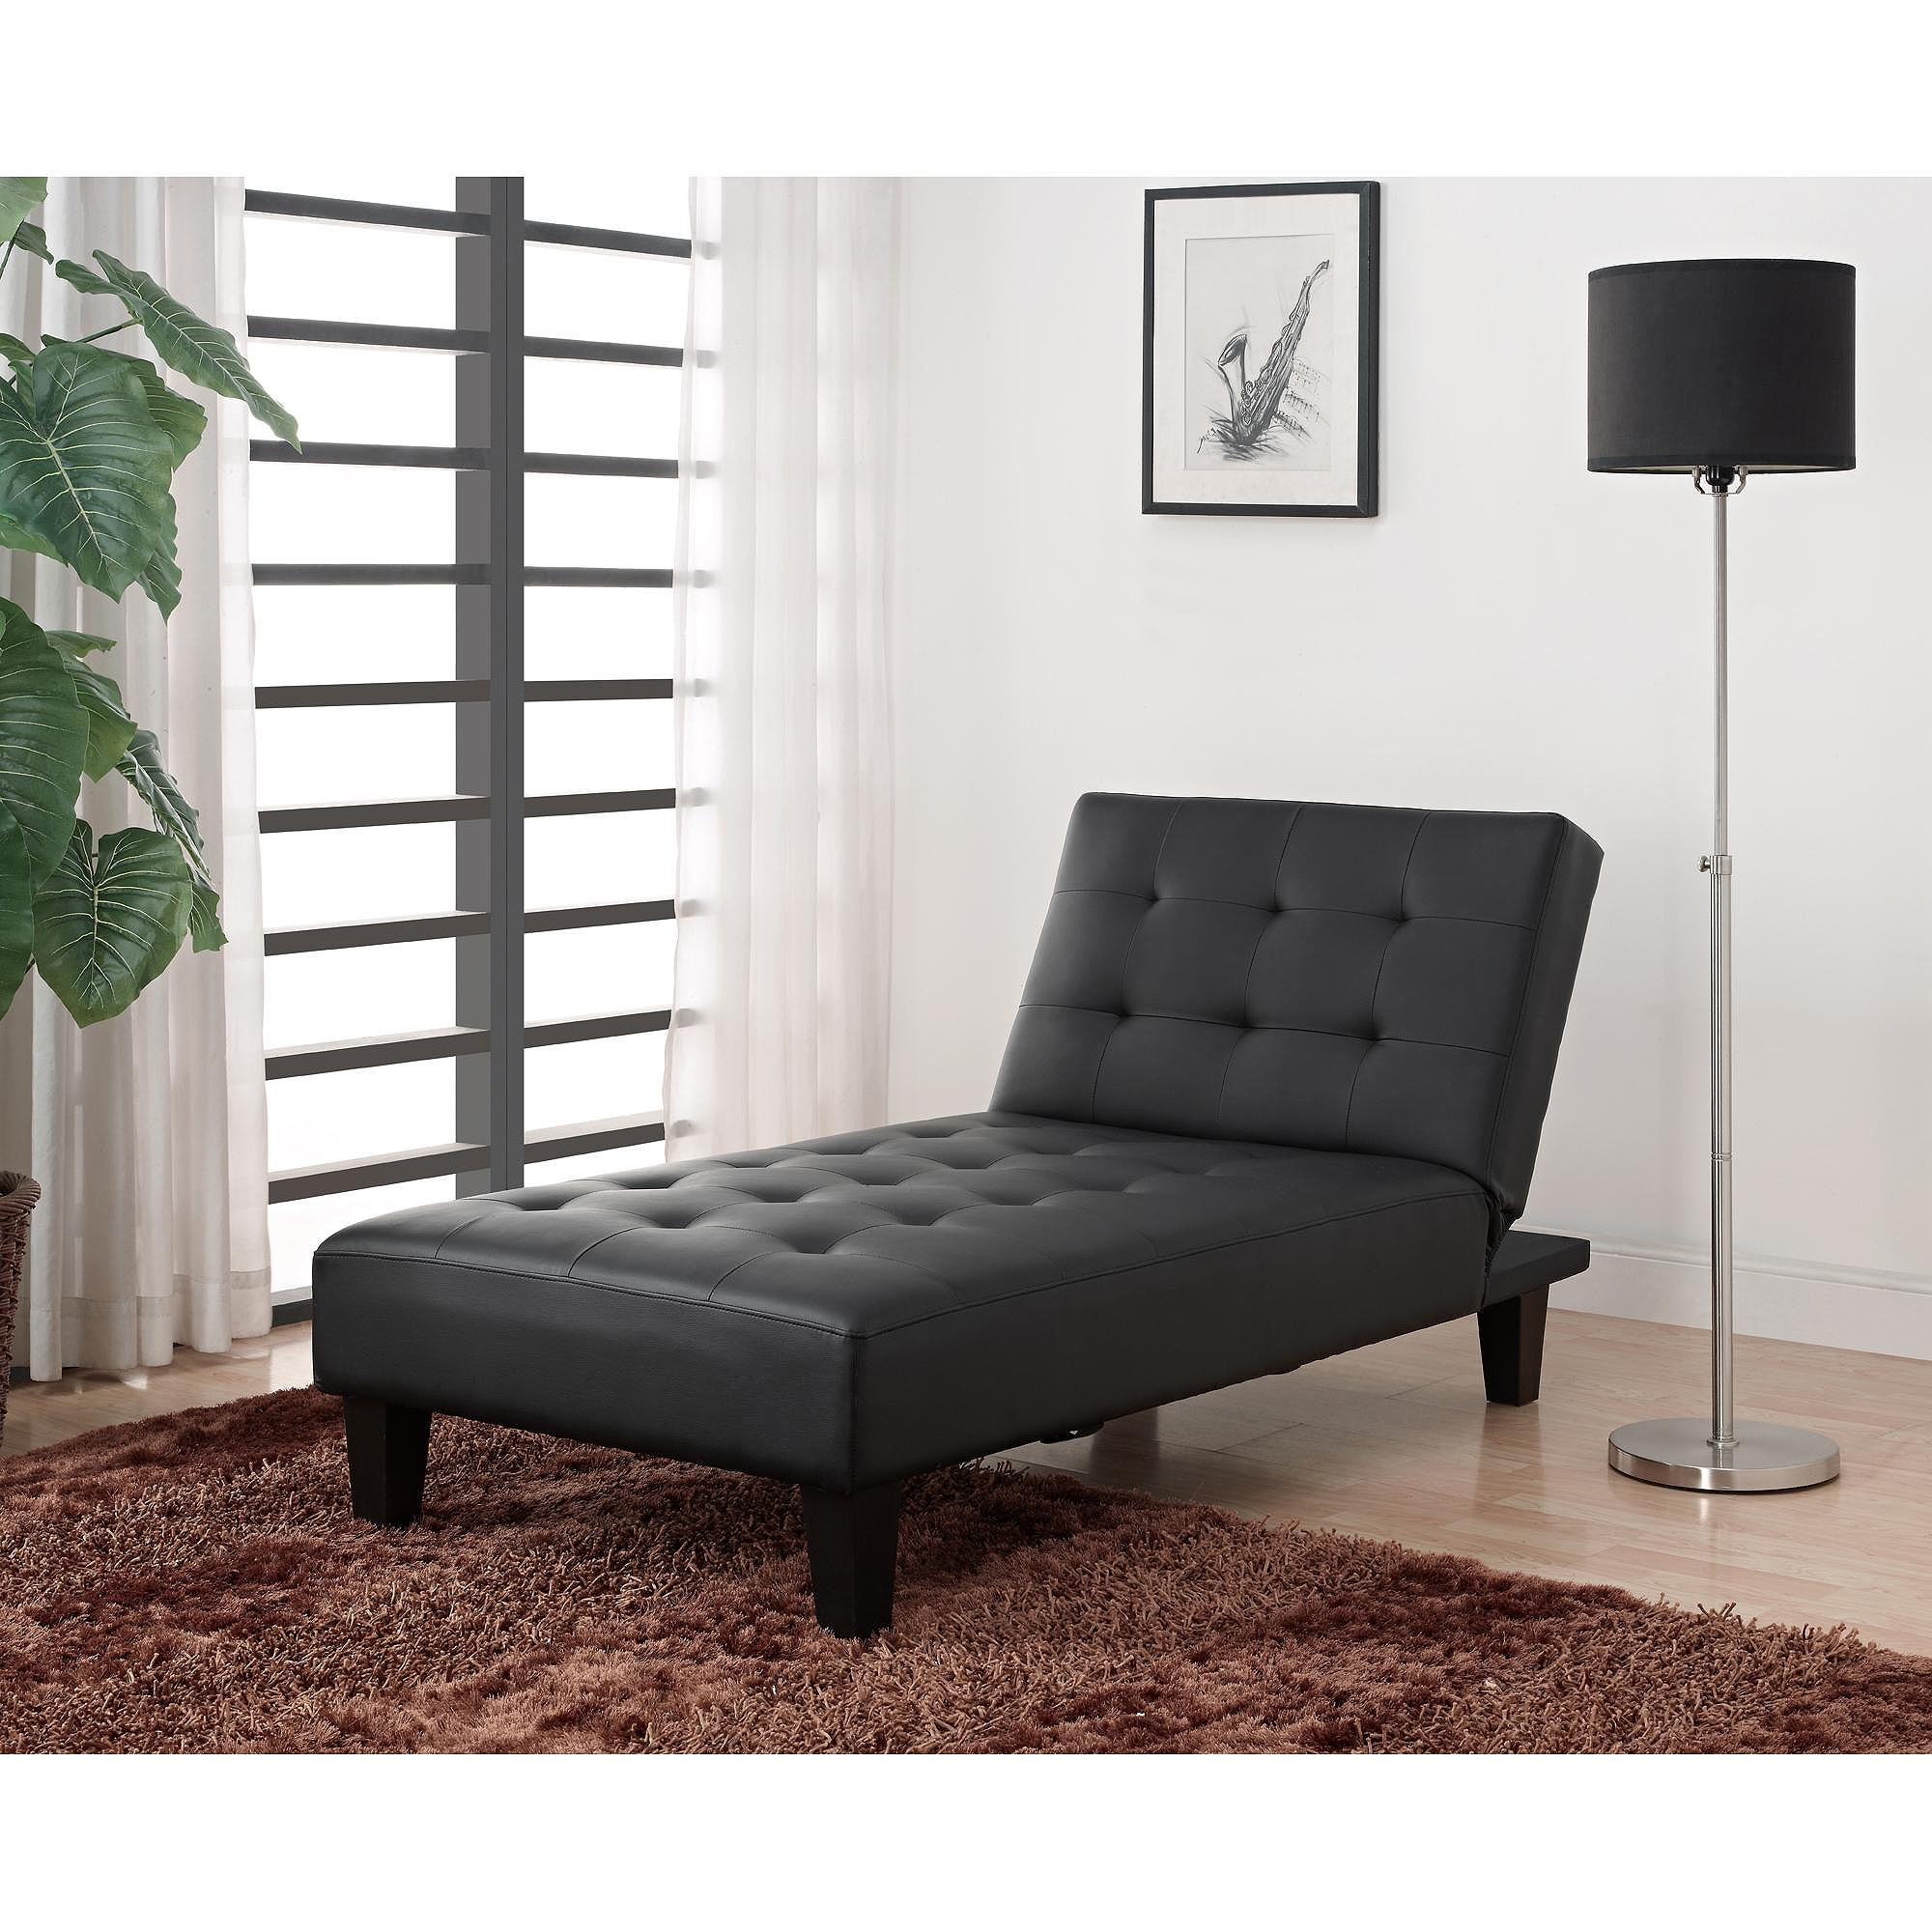 Latest Julia Futon Chaise Lounger, Black – Walmart Throughout Leather Chaise Lounge Sofa Beds (View 12 of 15)